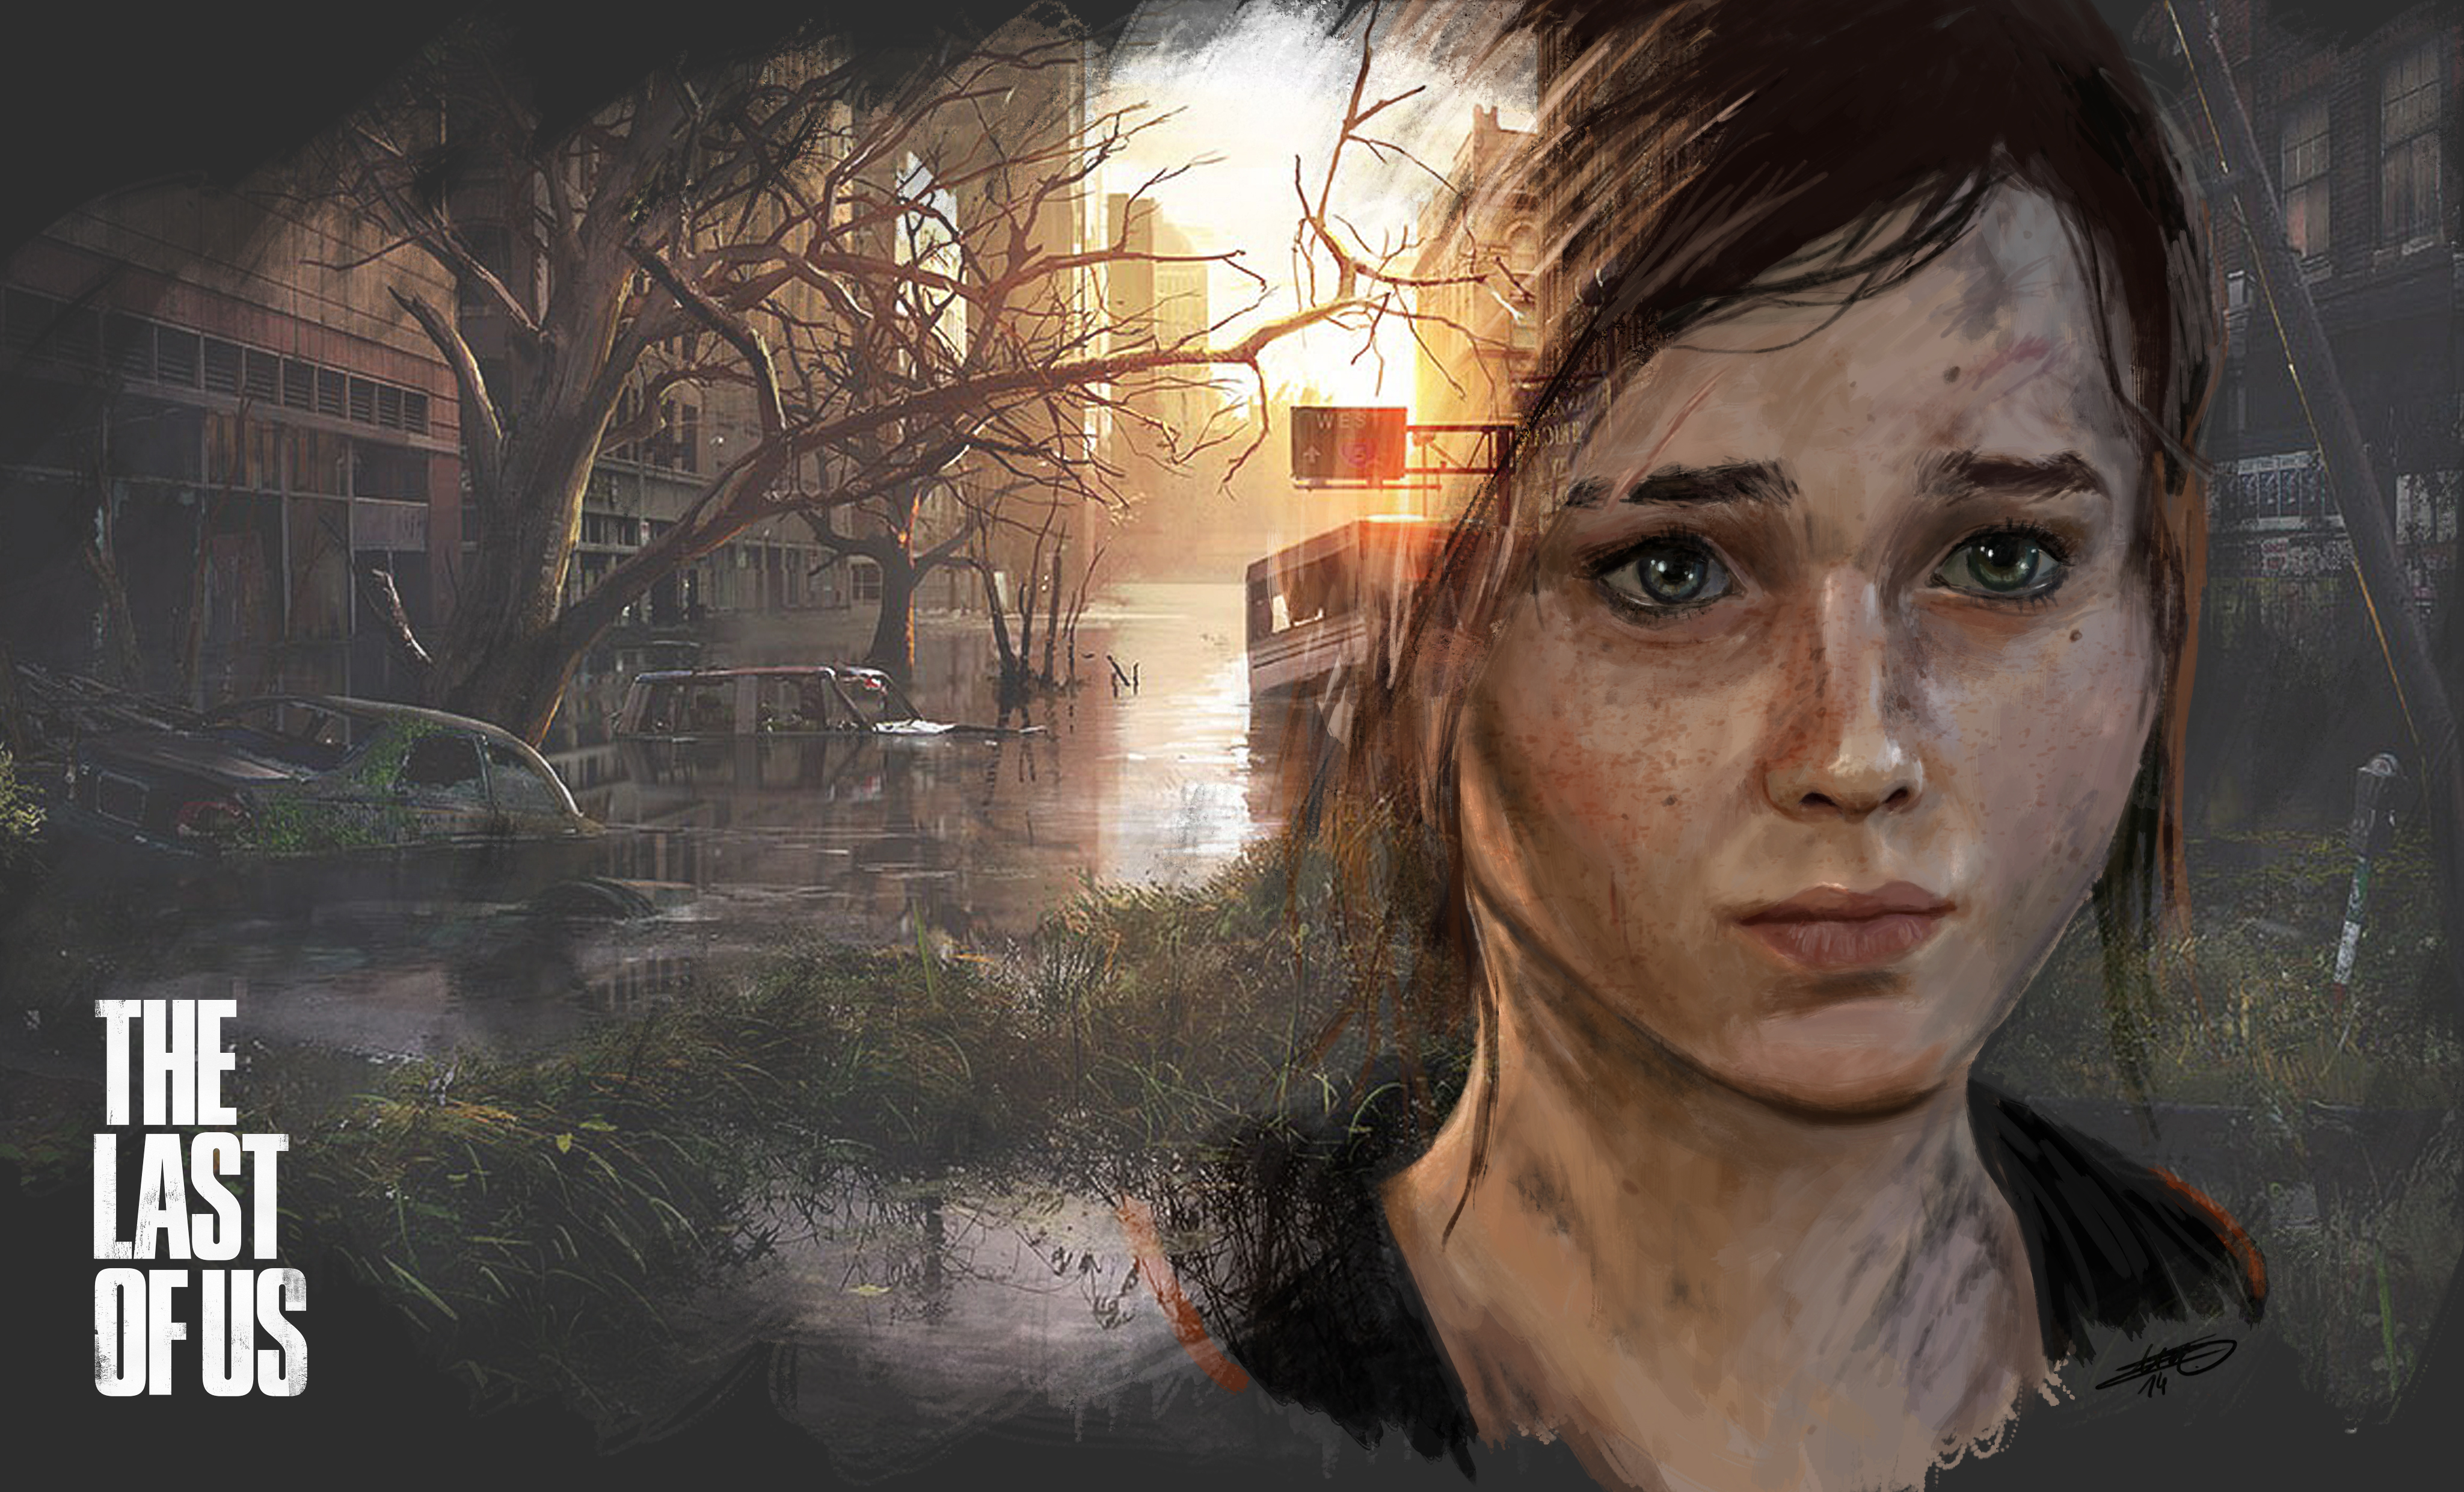 Ellie The Last Of Us Wallpaper: The Last Of Us By LoiccoiL On DeviantArt